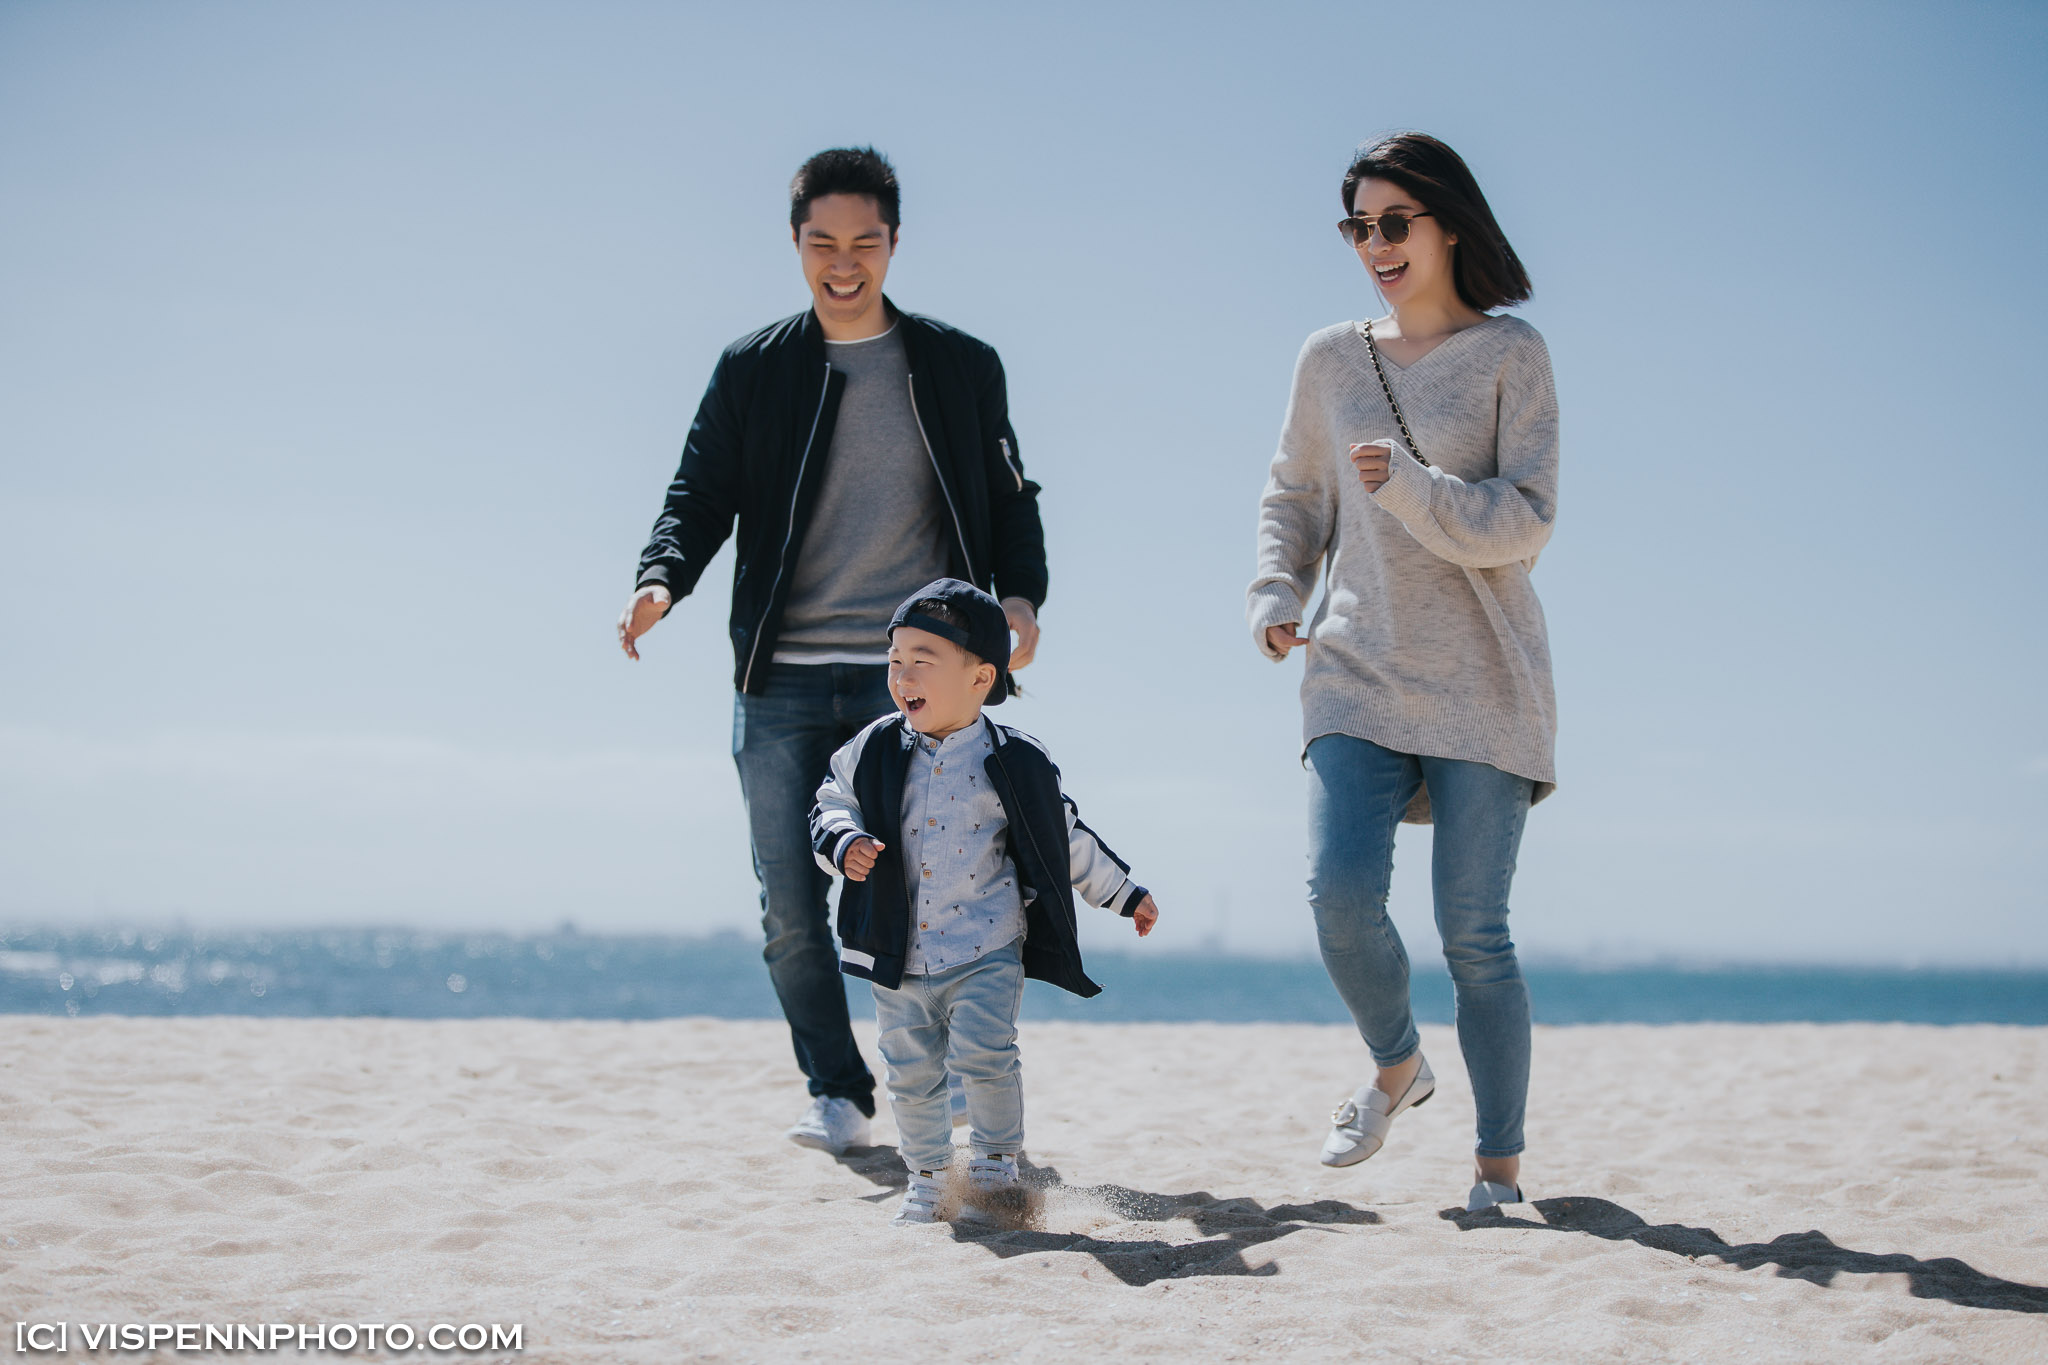 Melbourne Newborn Baby Family Photo BaoBao VISPENN 墨尔本 儿童 宝宝 百天照 满月照 孕妇照 全家福 KIDS CindiYUAN 5003 VISPENN